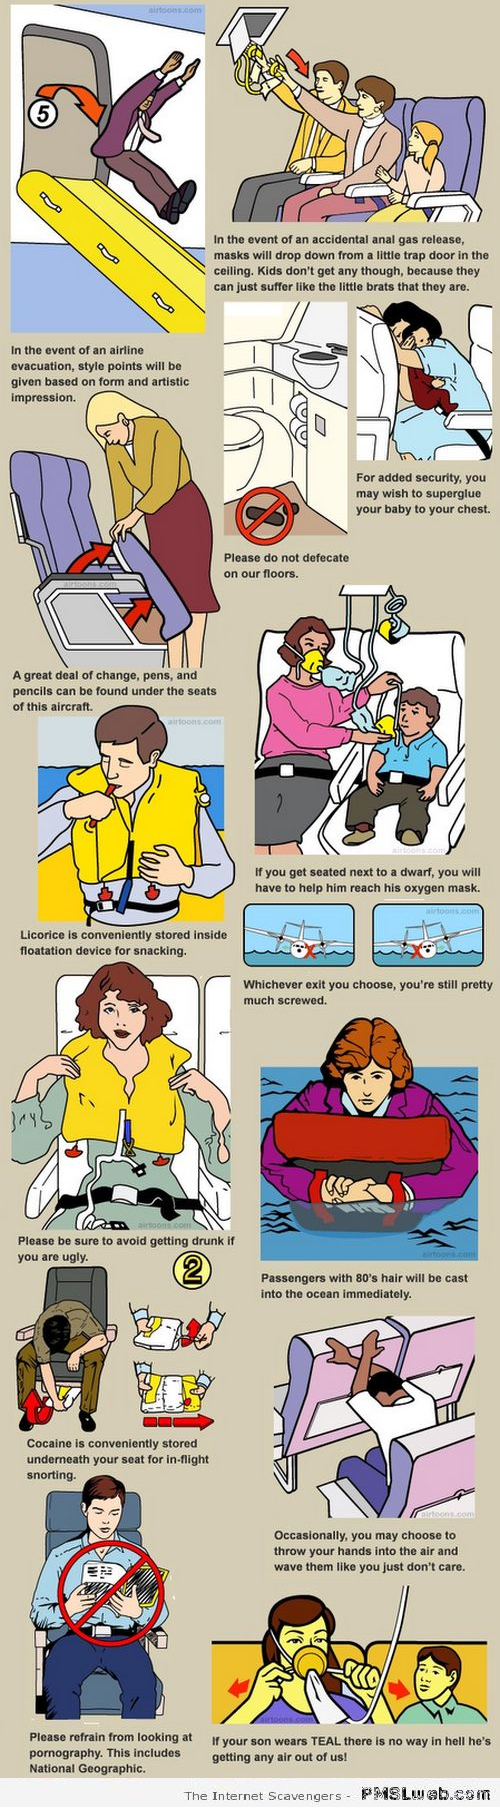 Funny plane guidelines 1 – Weekend nonsense at PMSLweb.com